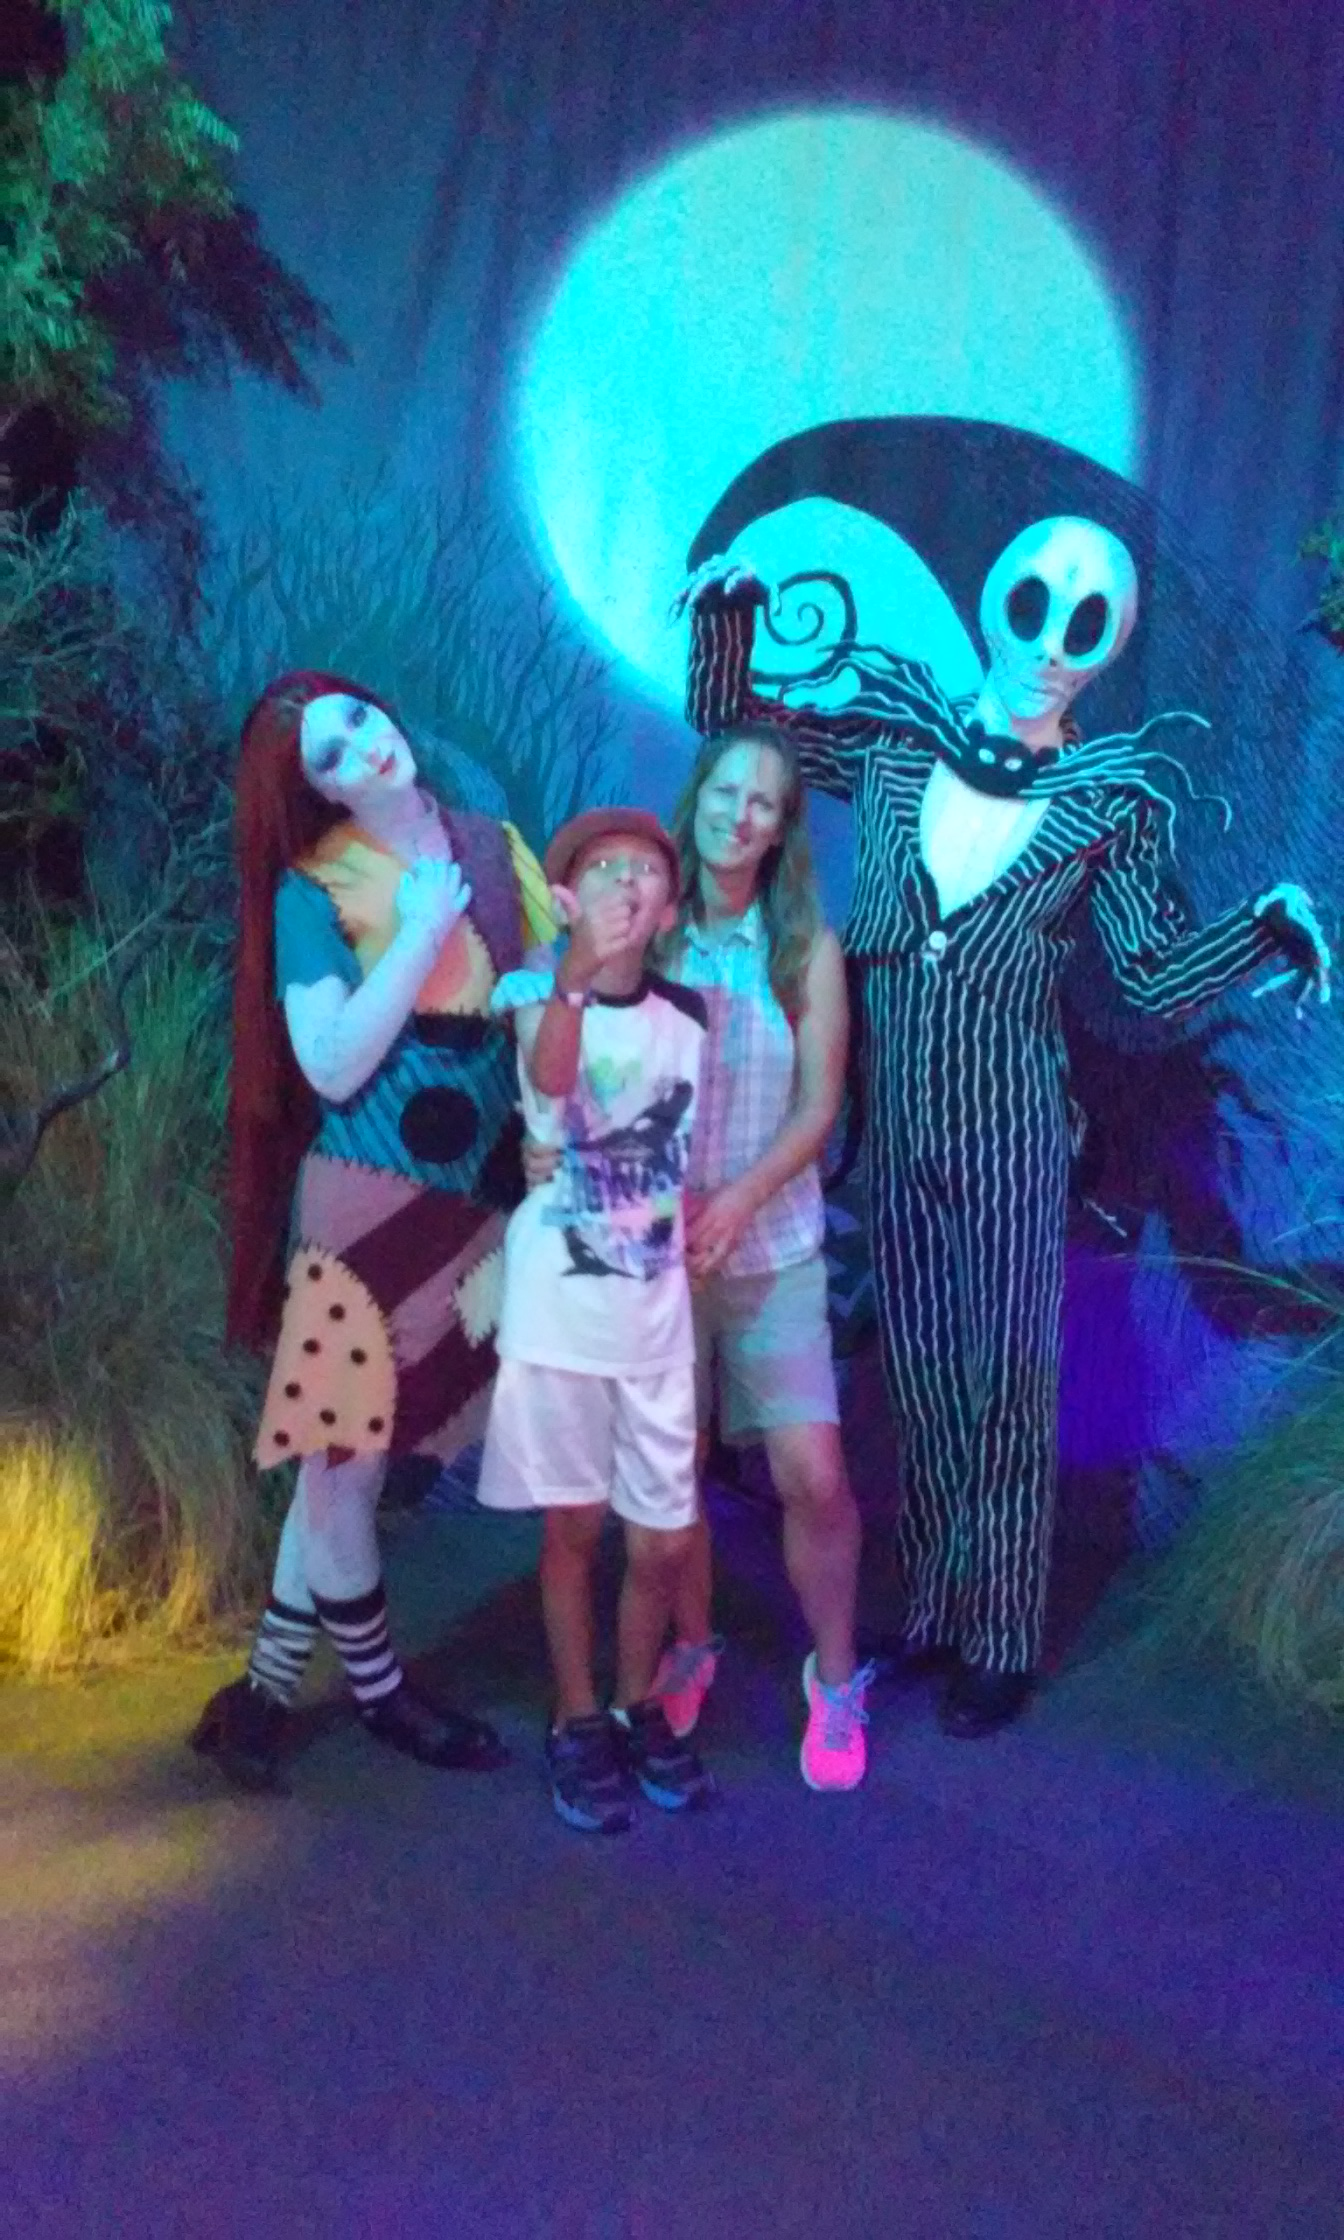 Go To Www Bing Comhella: Halloween Time Family Media Day!: #HalloweenTime Is The